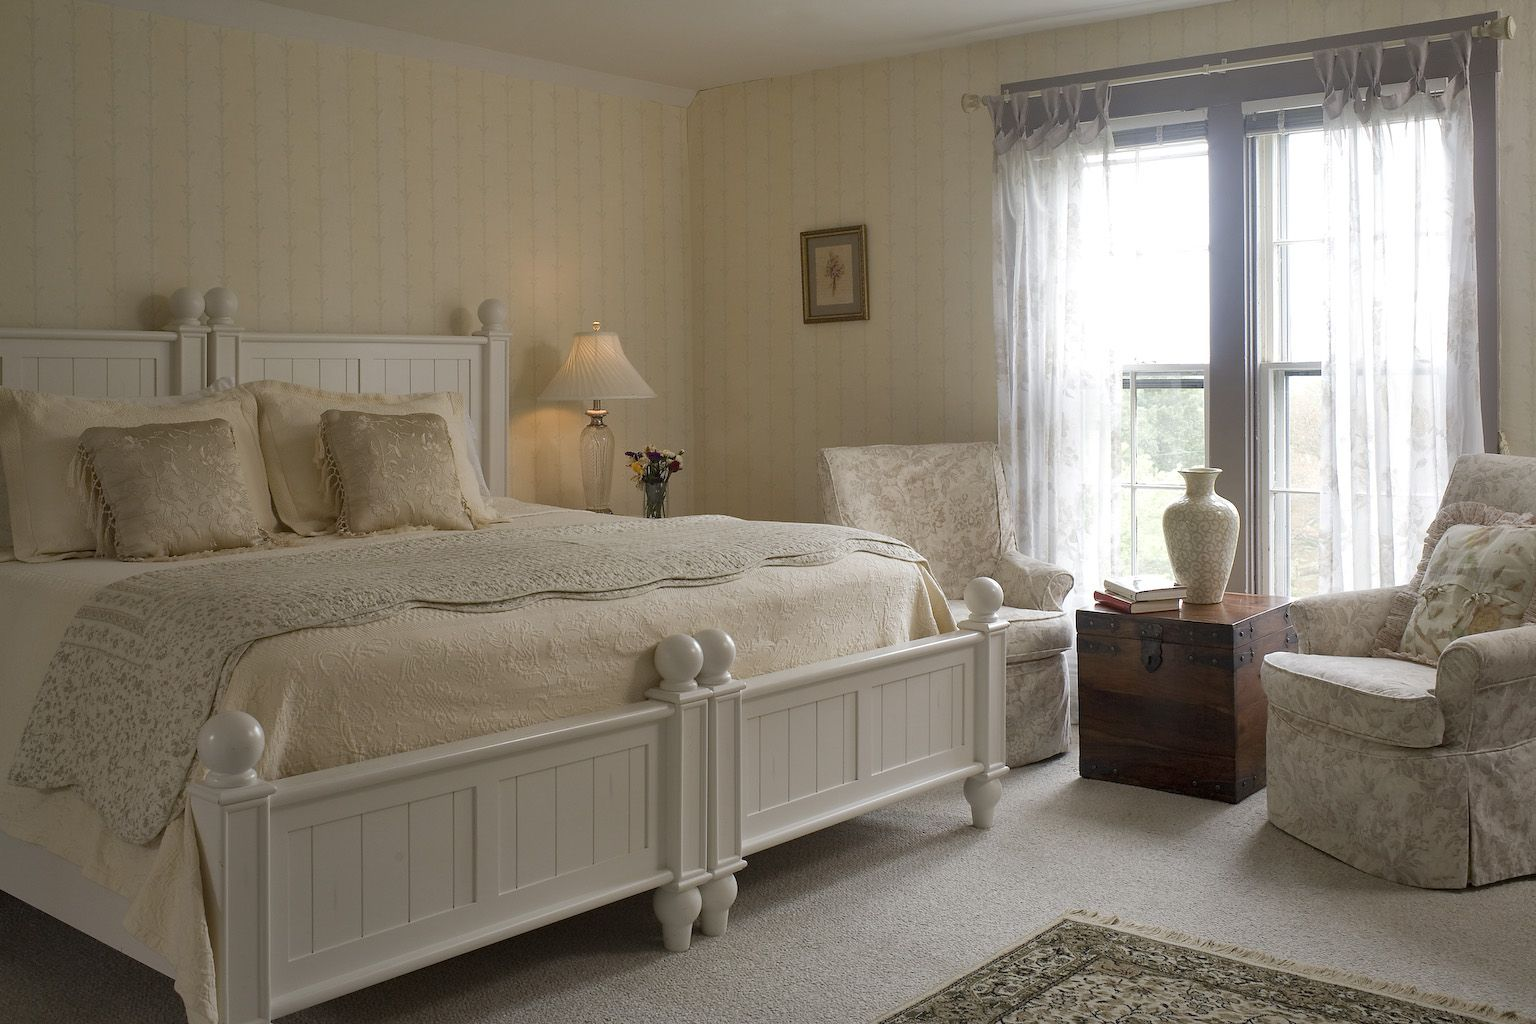 Cape Cod Waterford Room Home bedroom